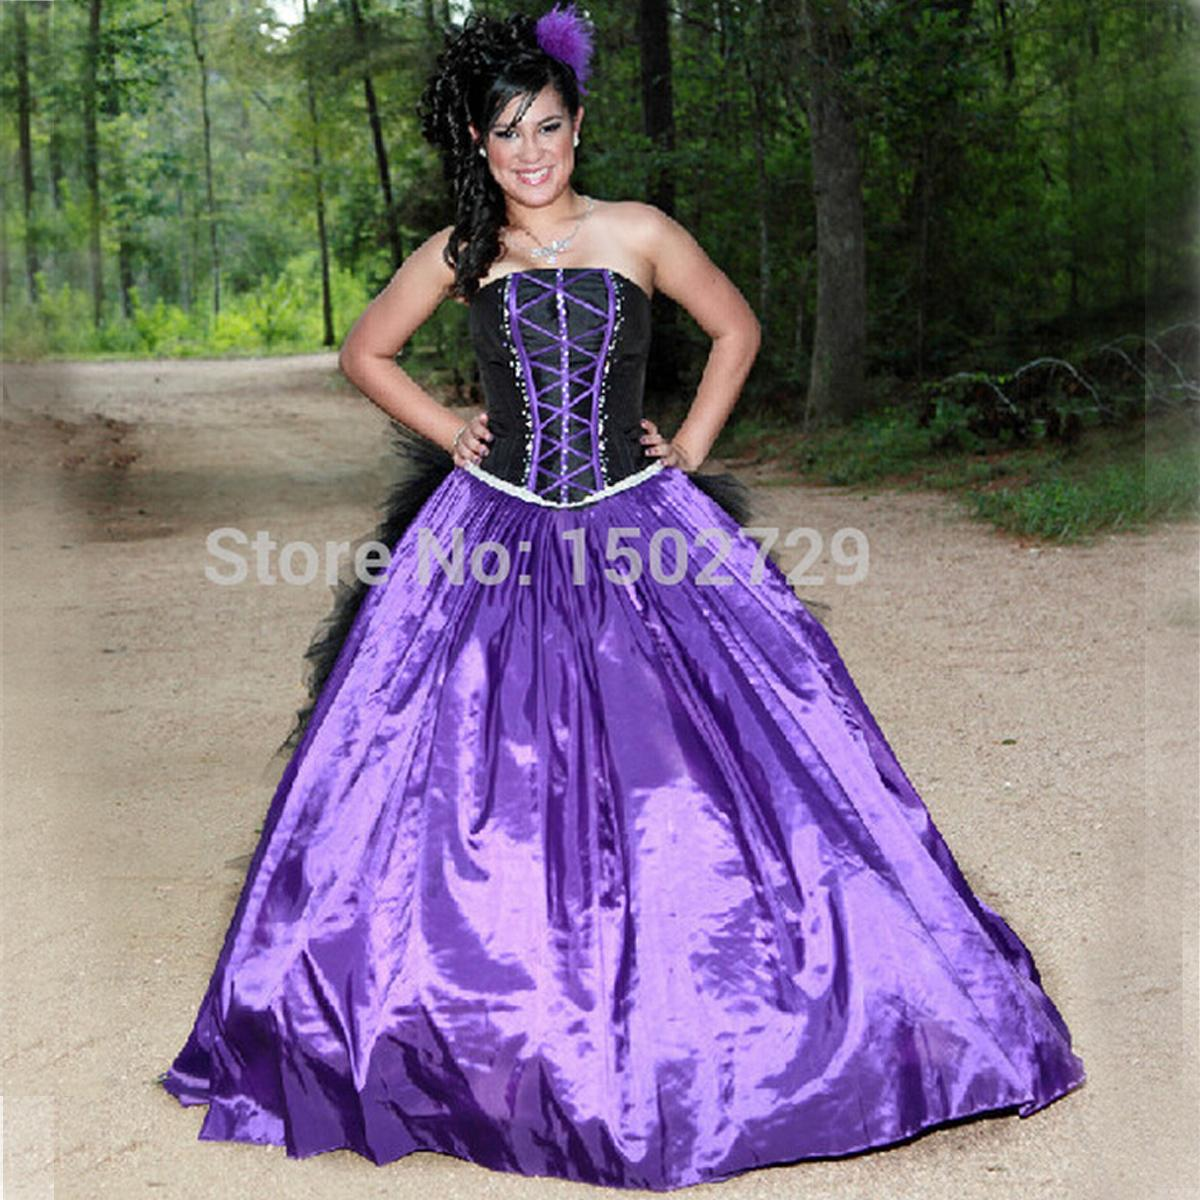 Vintage Purple Gothic Ball Gown Wedding Dresses With Cloak: 2015 Purple And Black Ball Gown Gothic Wedding Dress